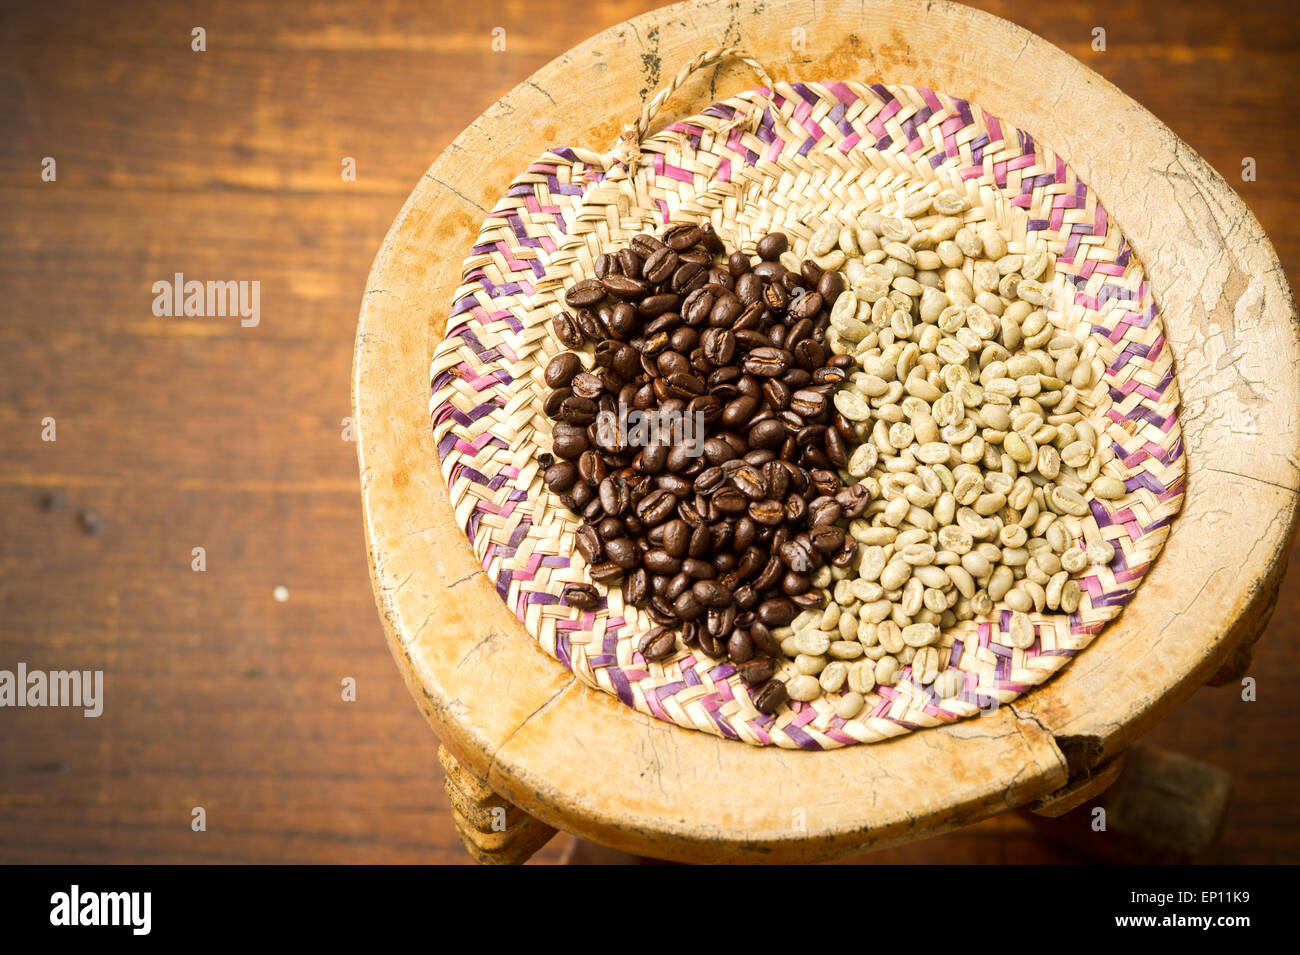 Does green coffee reduce weight quora green coffee bean weight does green coffee reduce weight quora image 4 ccuart Images